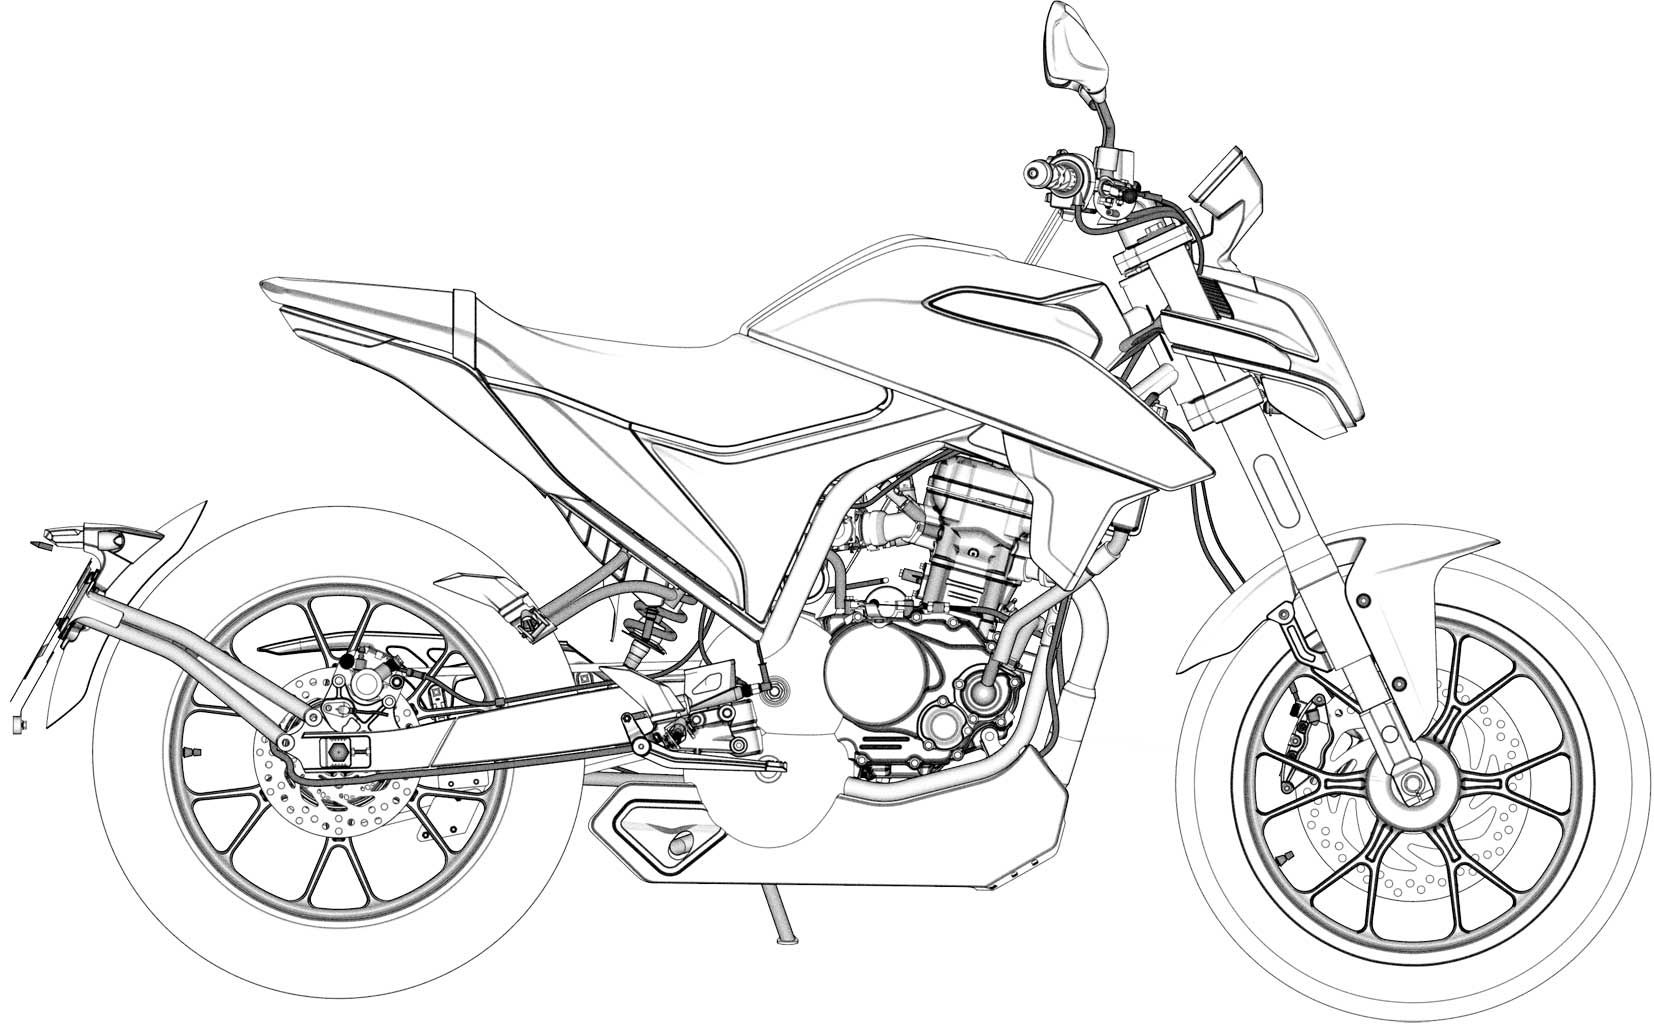 Fork and swingarm remain the same, and a TFT dash is retained as well.